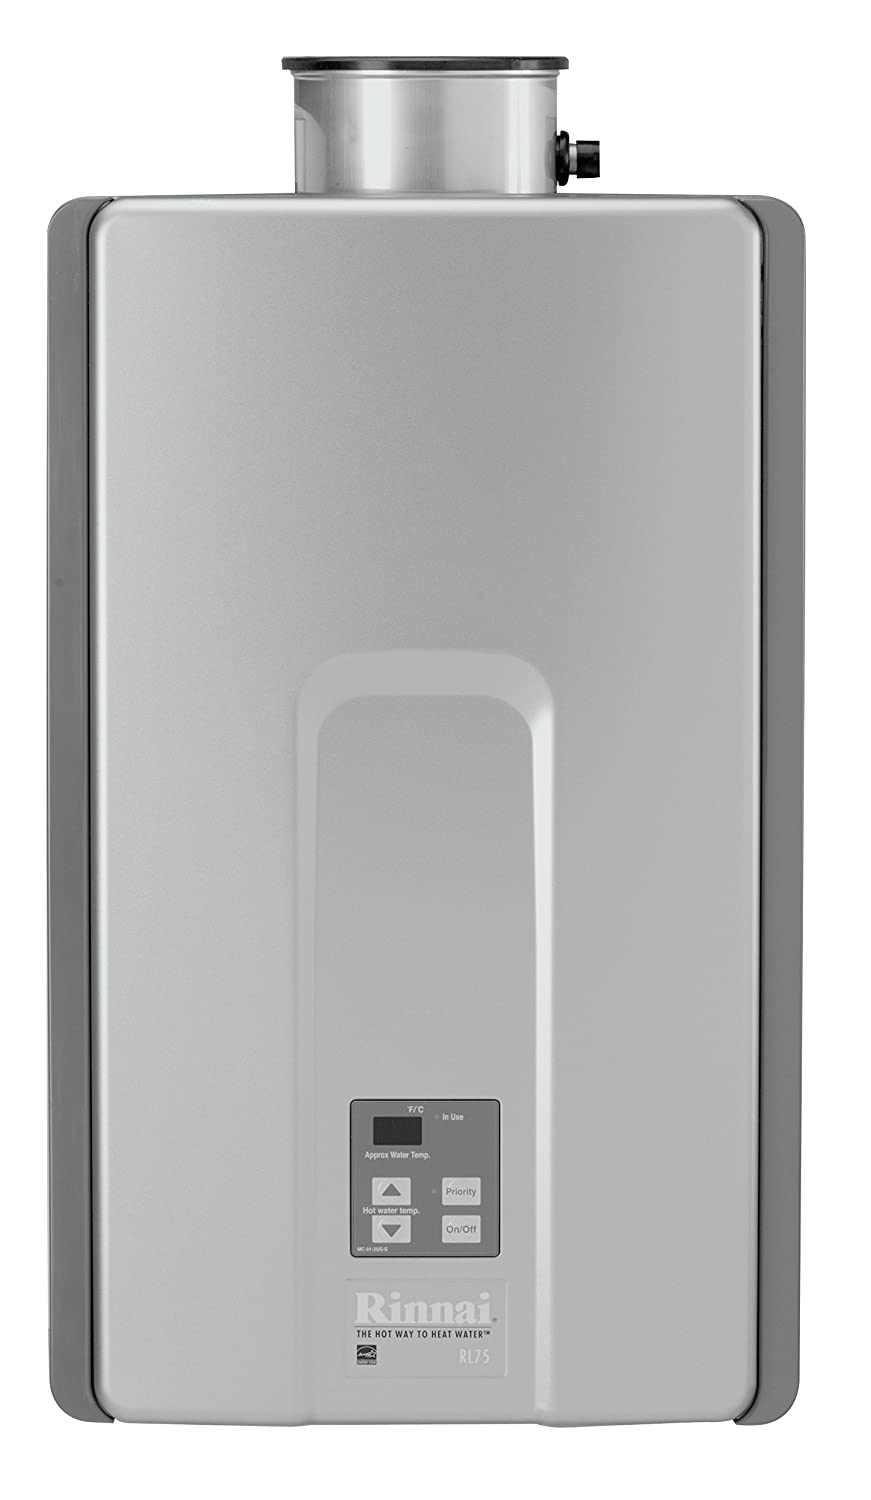 Benefits of the Tankless Gas Water Heater